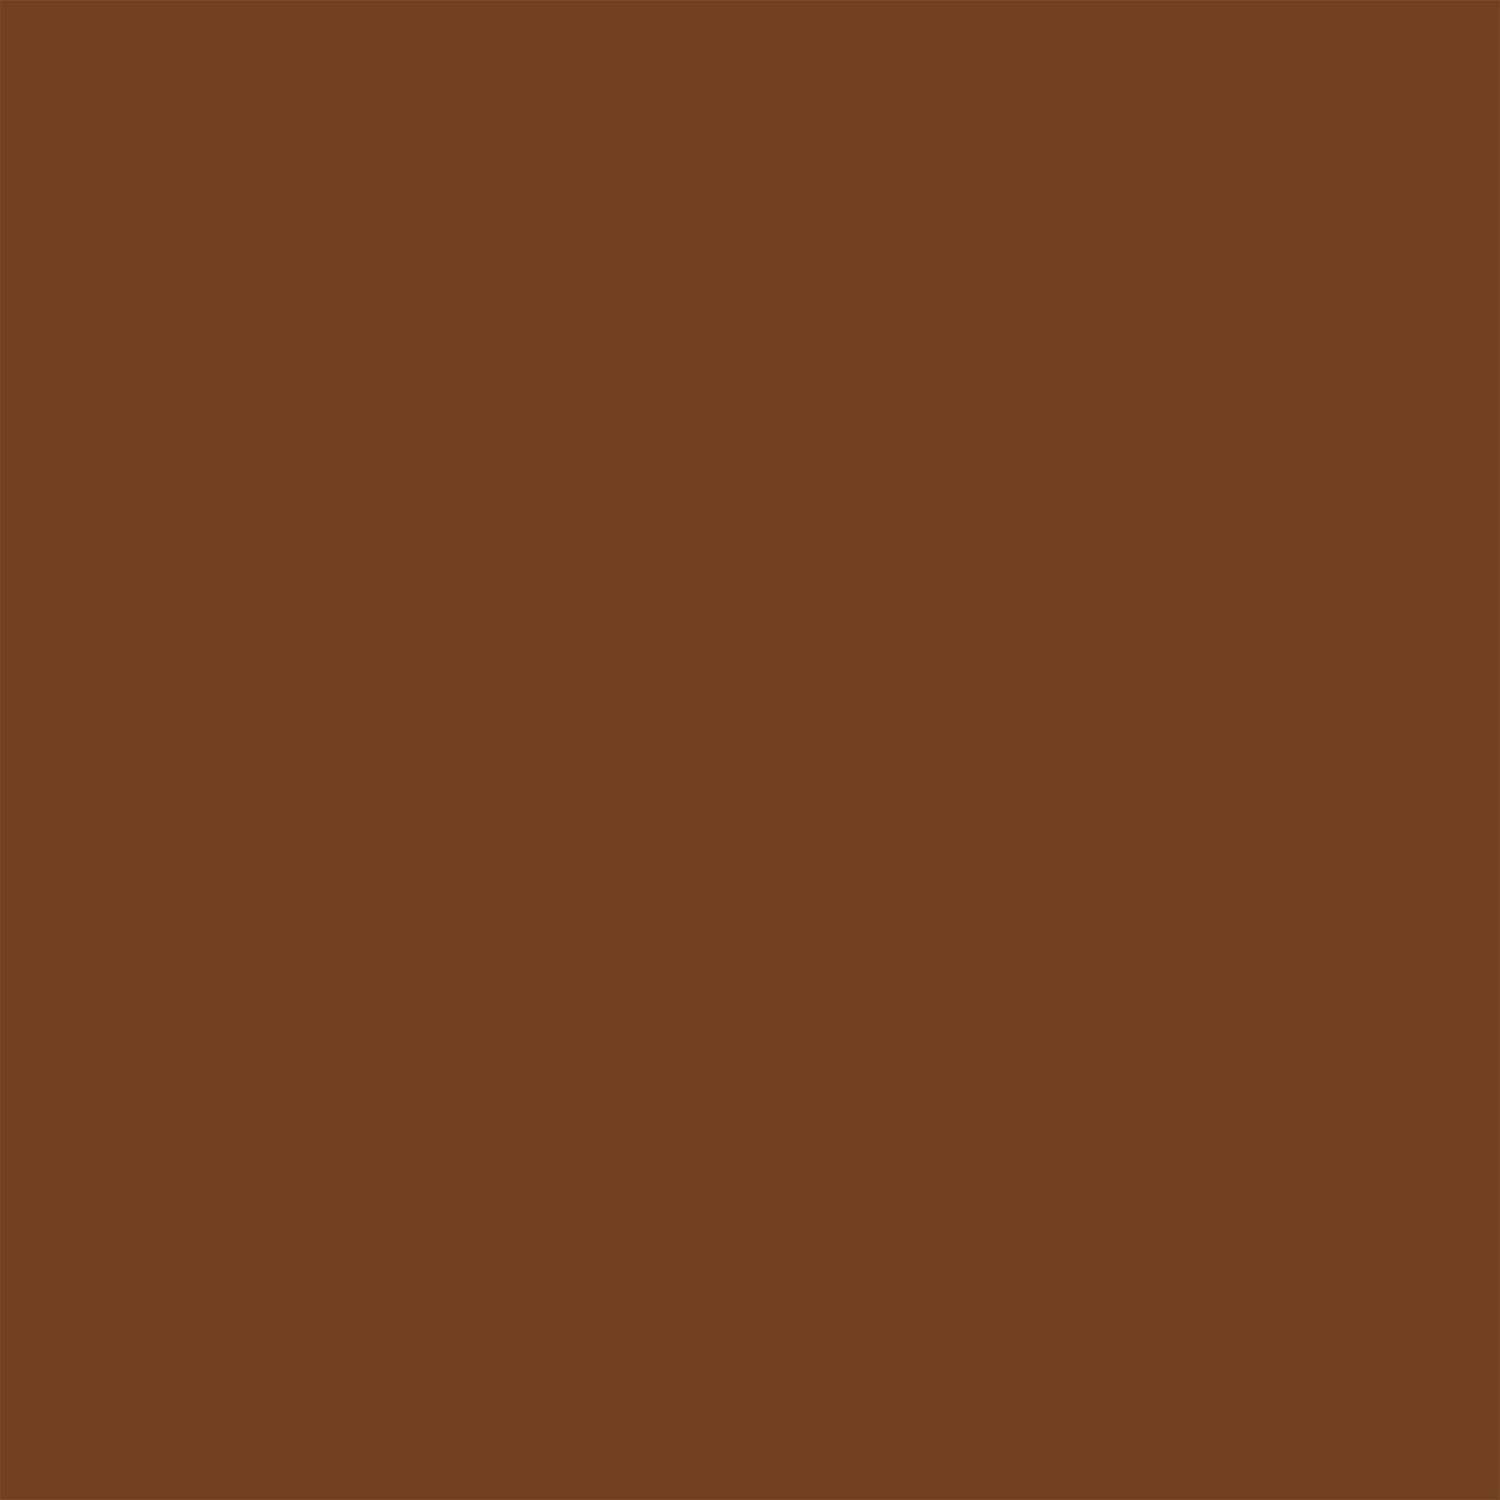 1500x1500 > Brown Wallpapers